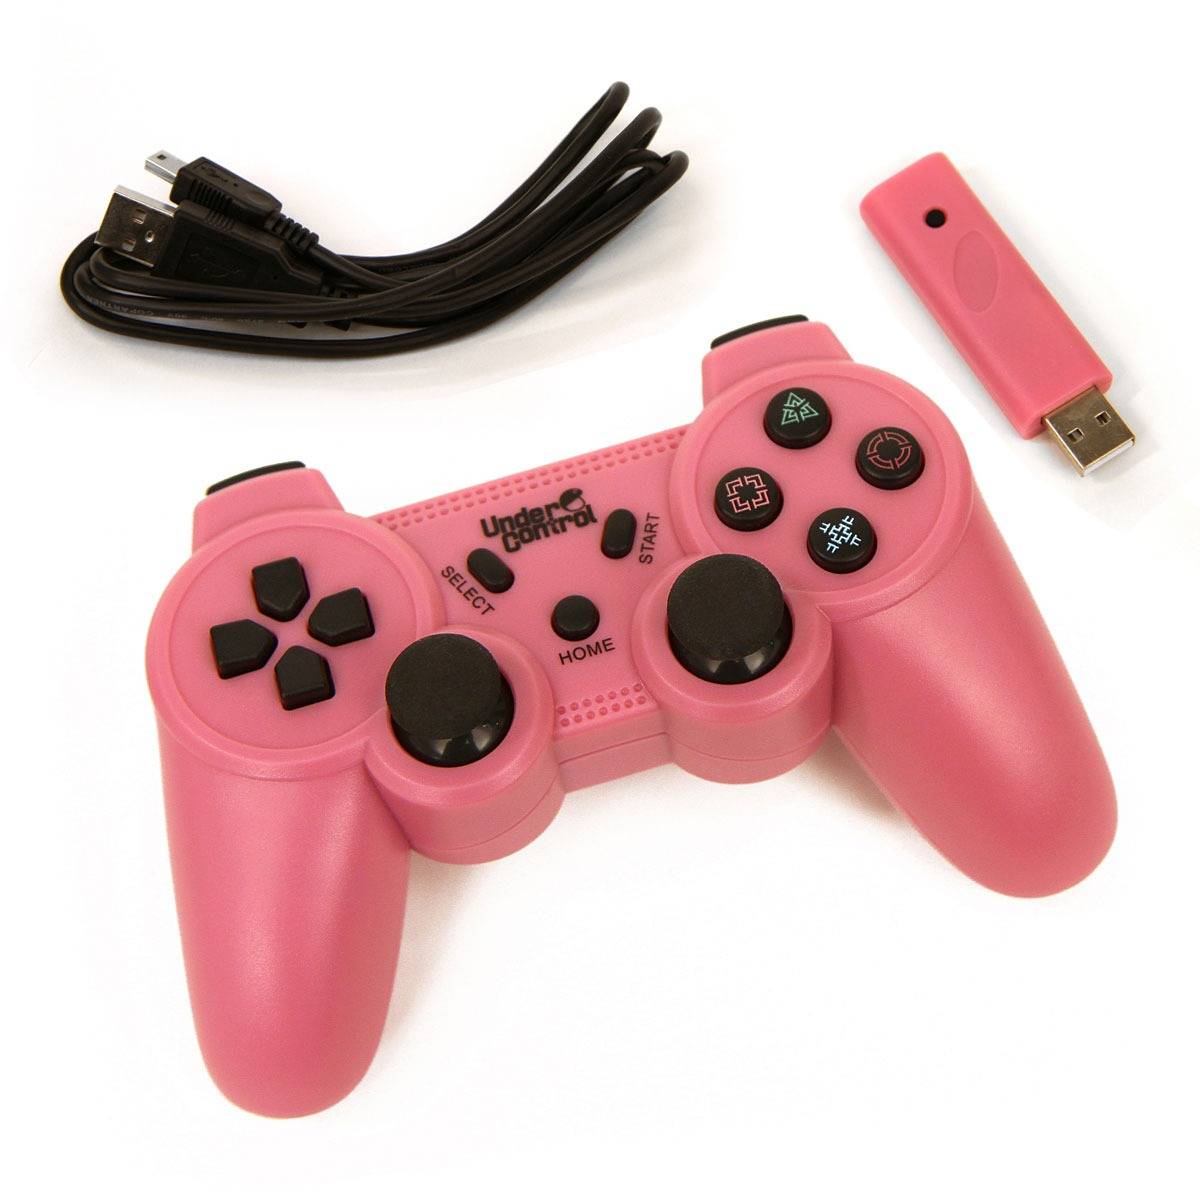 Accessoires PS3 Under Control Wireless Controller - rose (PS3) Under Control Manette sans fil - rose